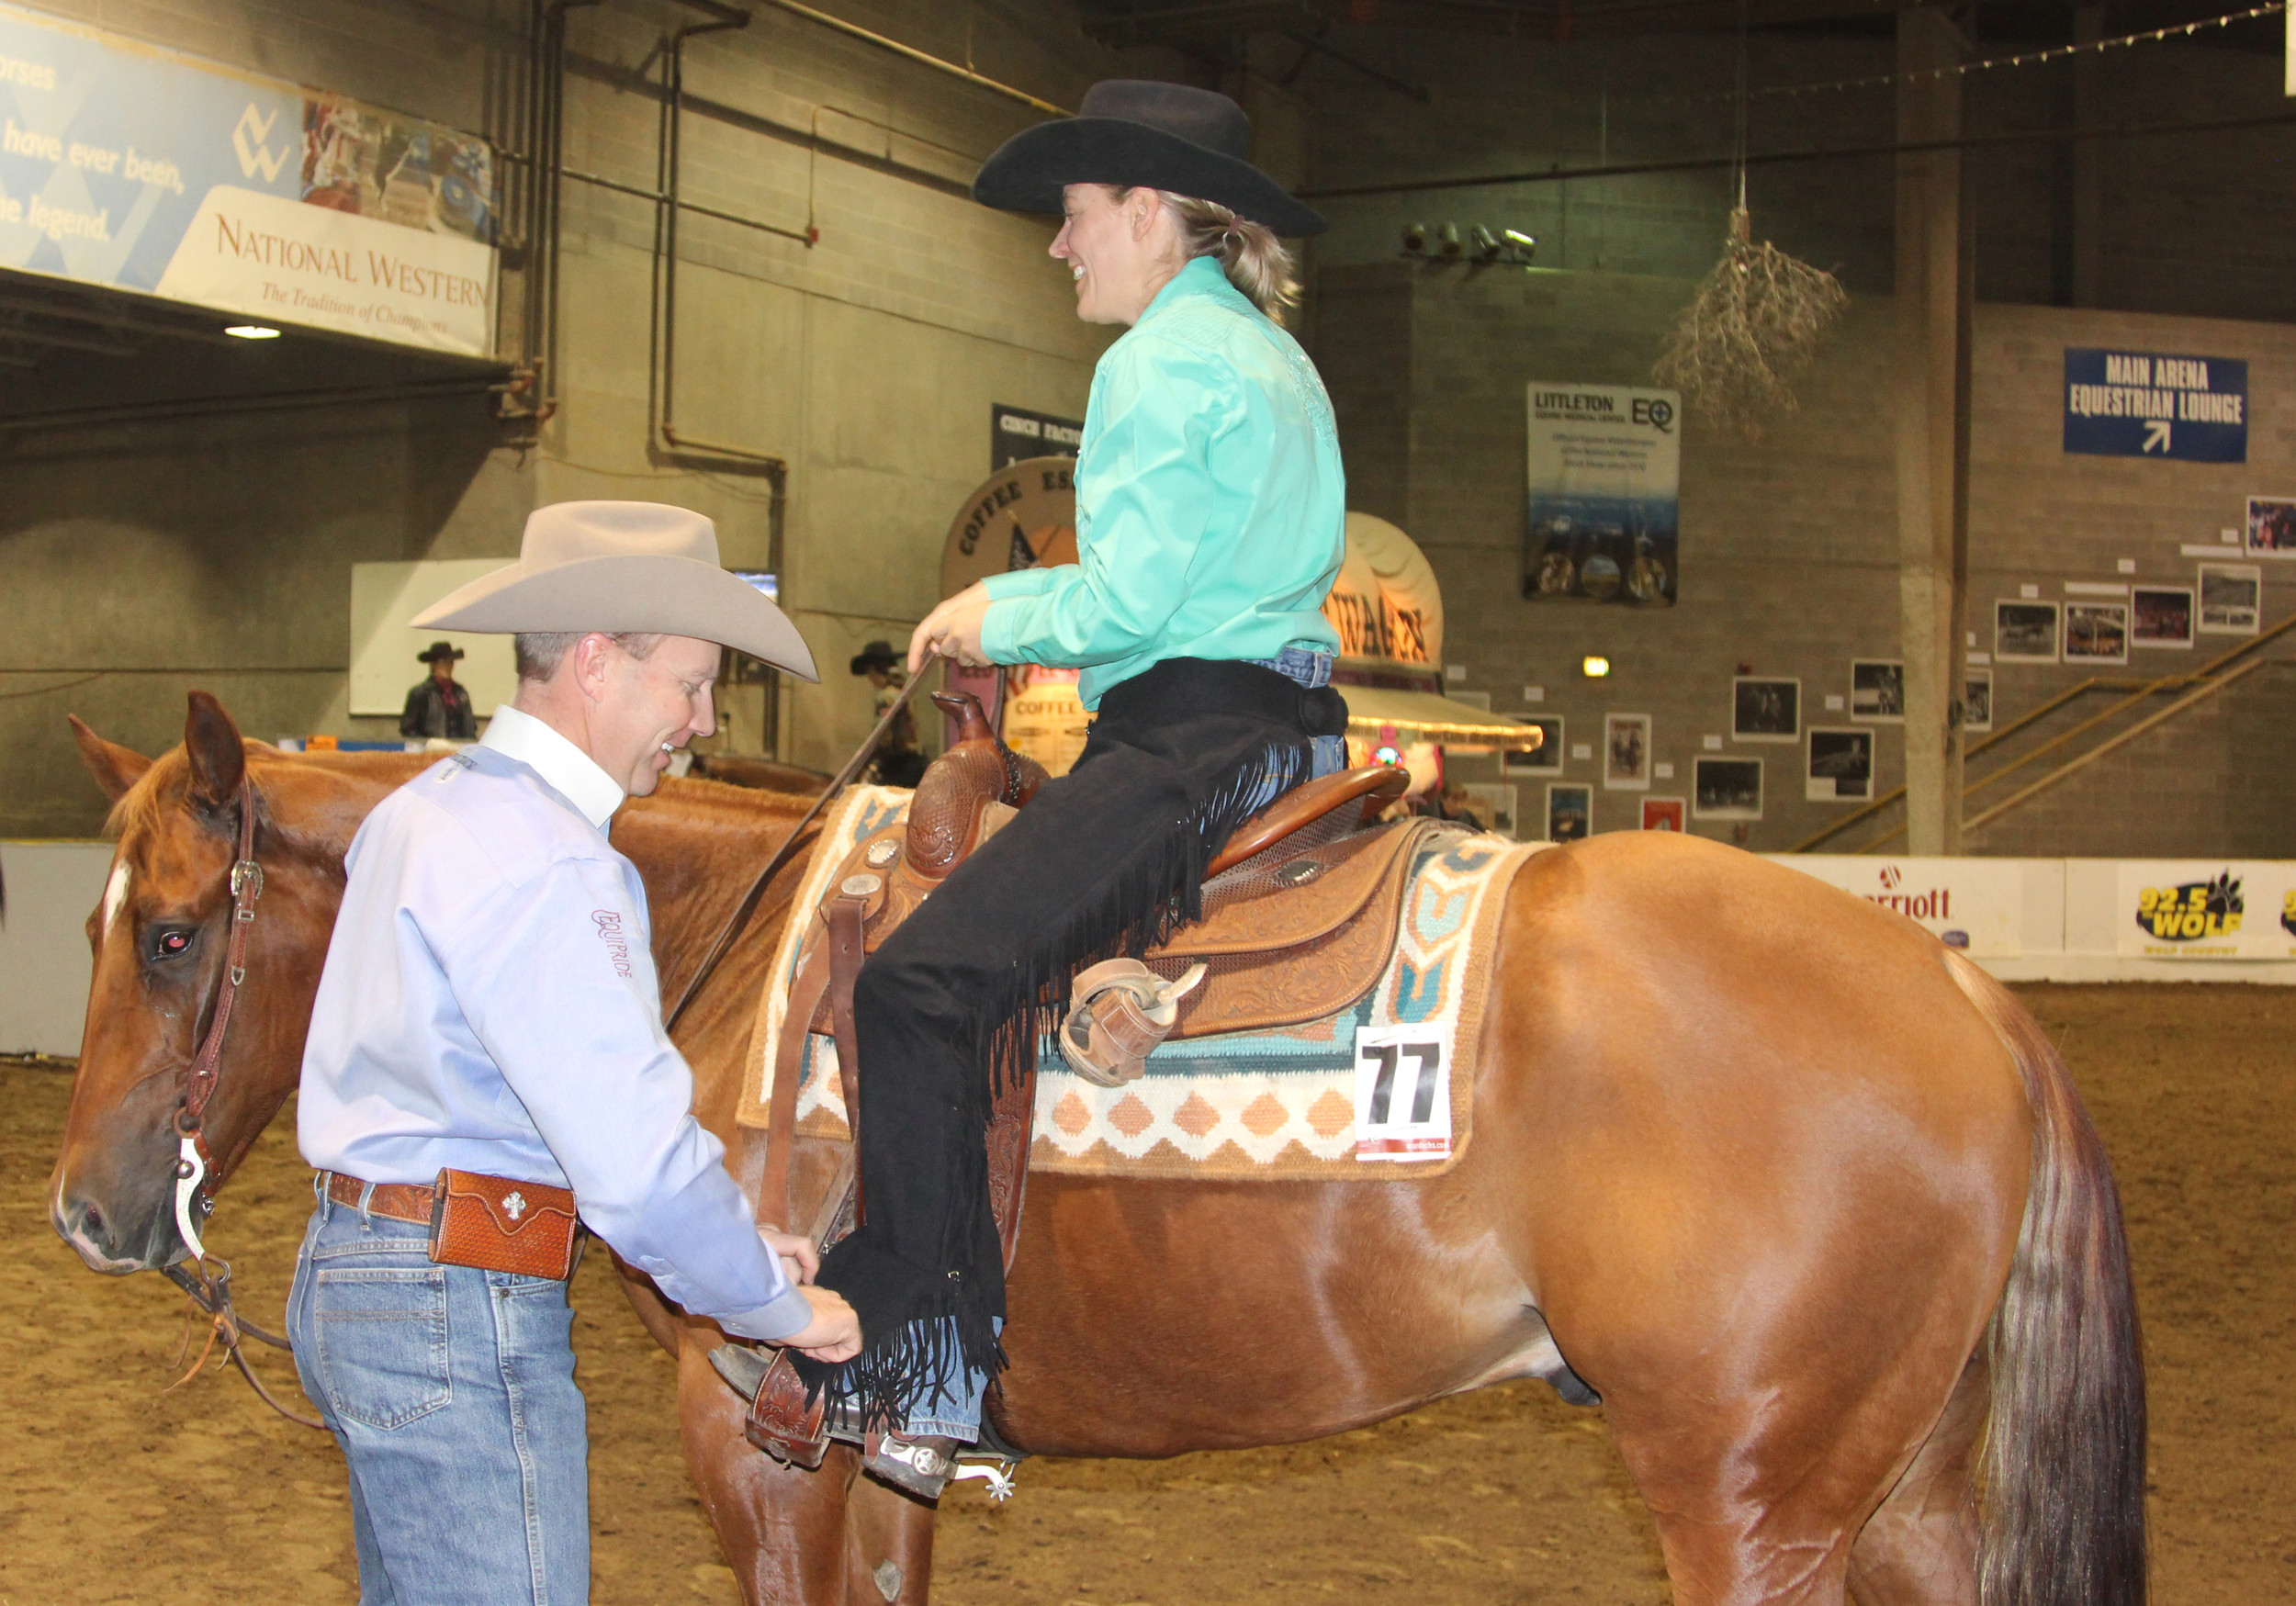 Trainer Devin Warren adjusts the saddle to fit horse owner Gina Ratcliff. Warren, owner of Franktown's Warren Performance Horses, had about 80 horses at the Jan. 5-9 Pre Denver Quarter Horse Show that precedes the National Western Stock Show.